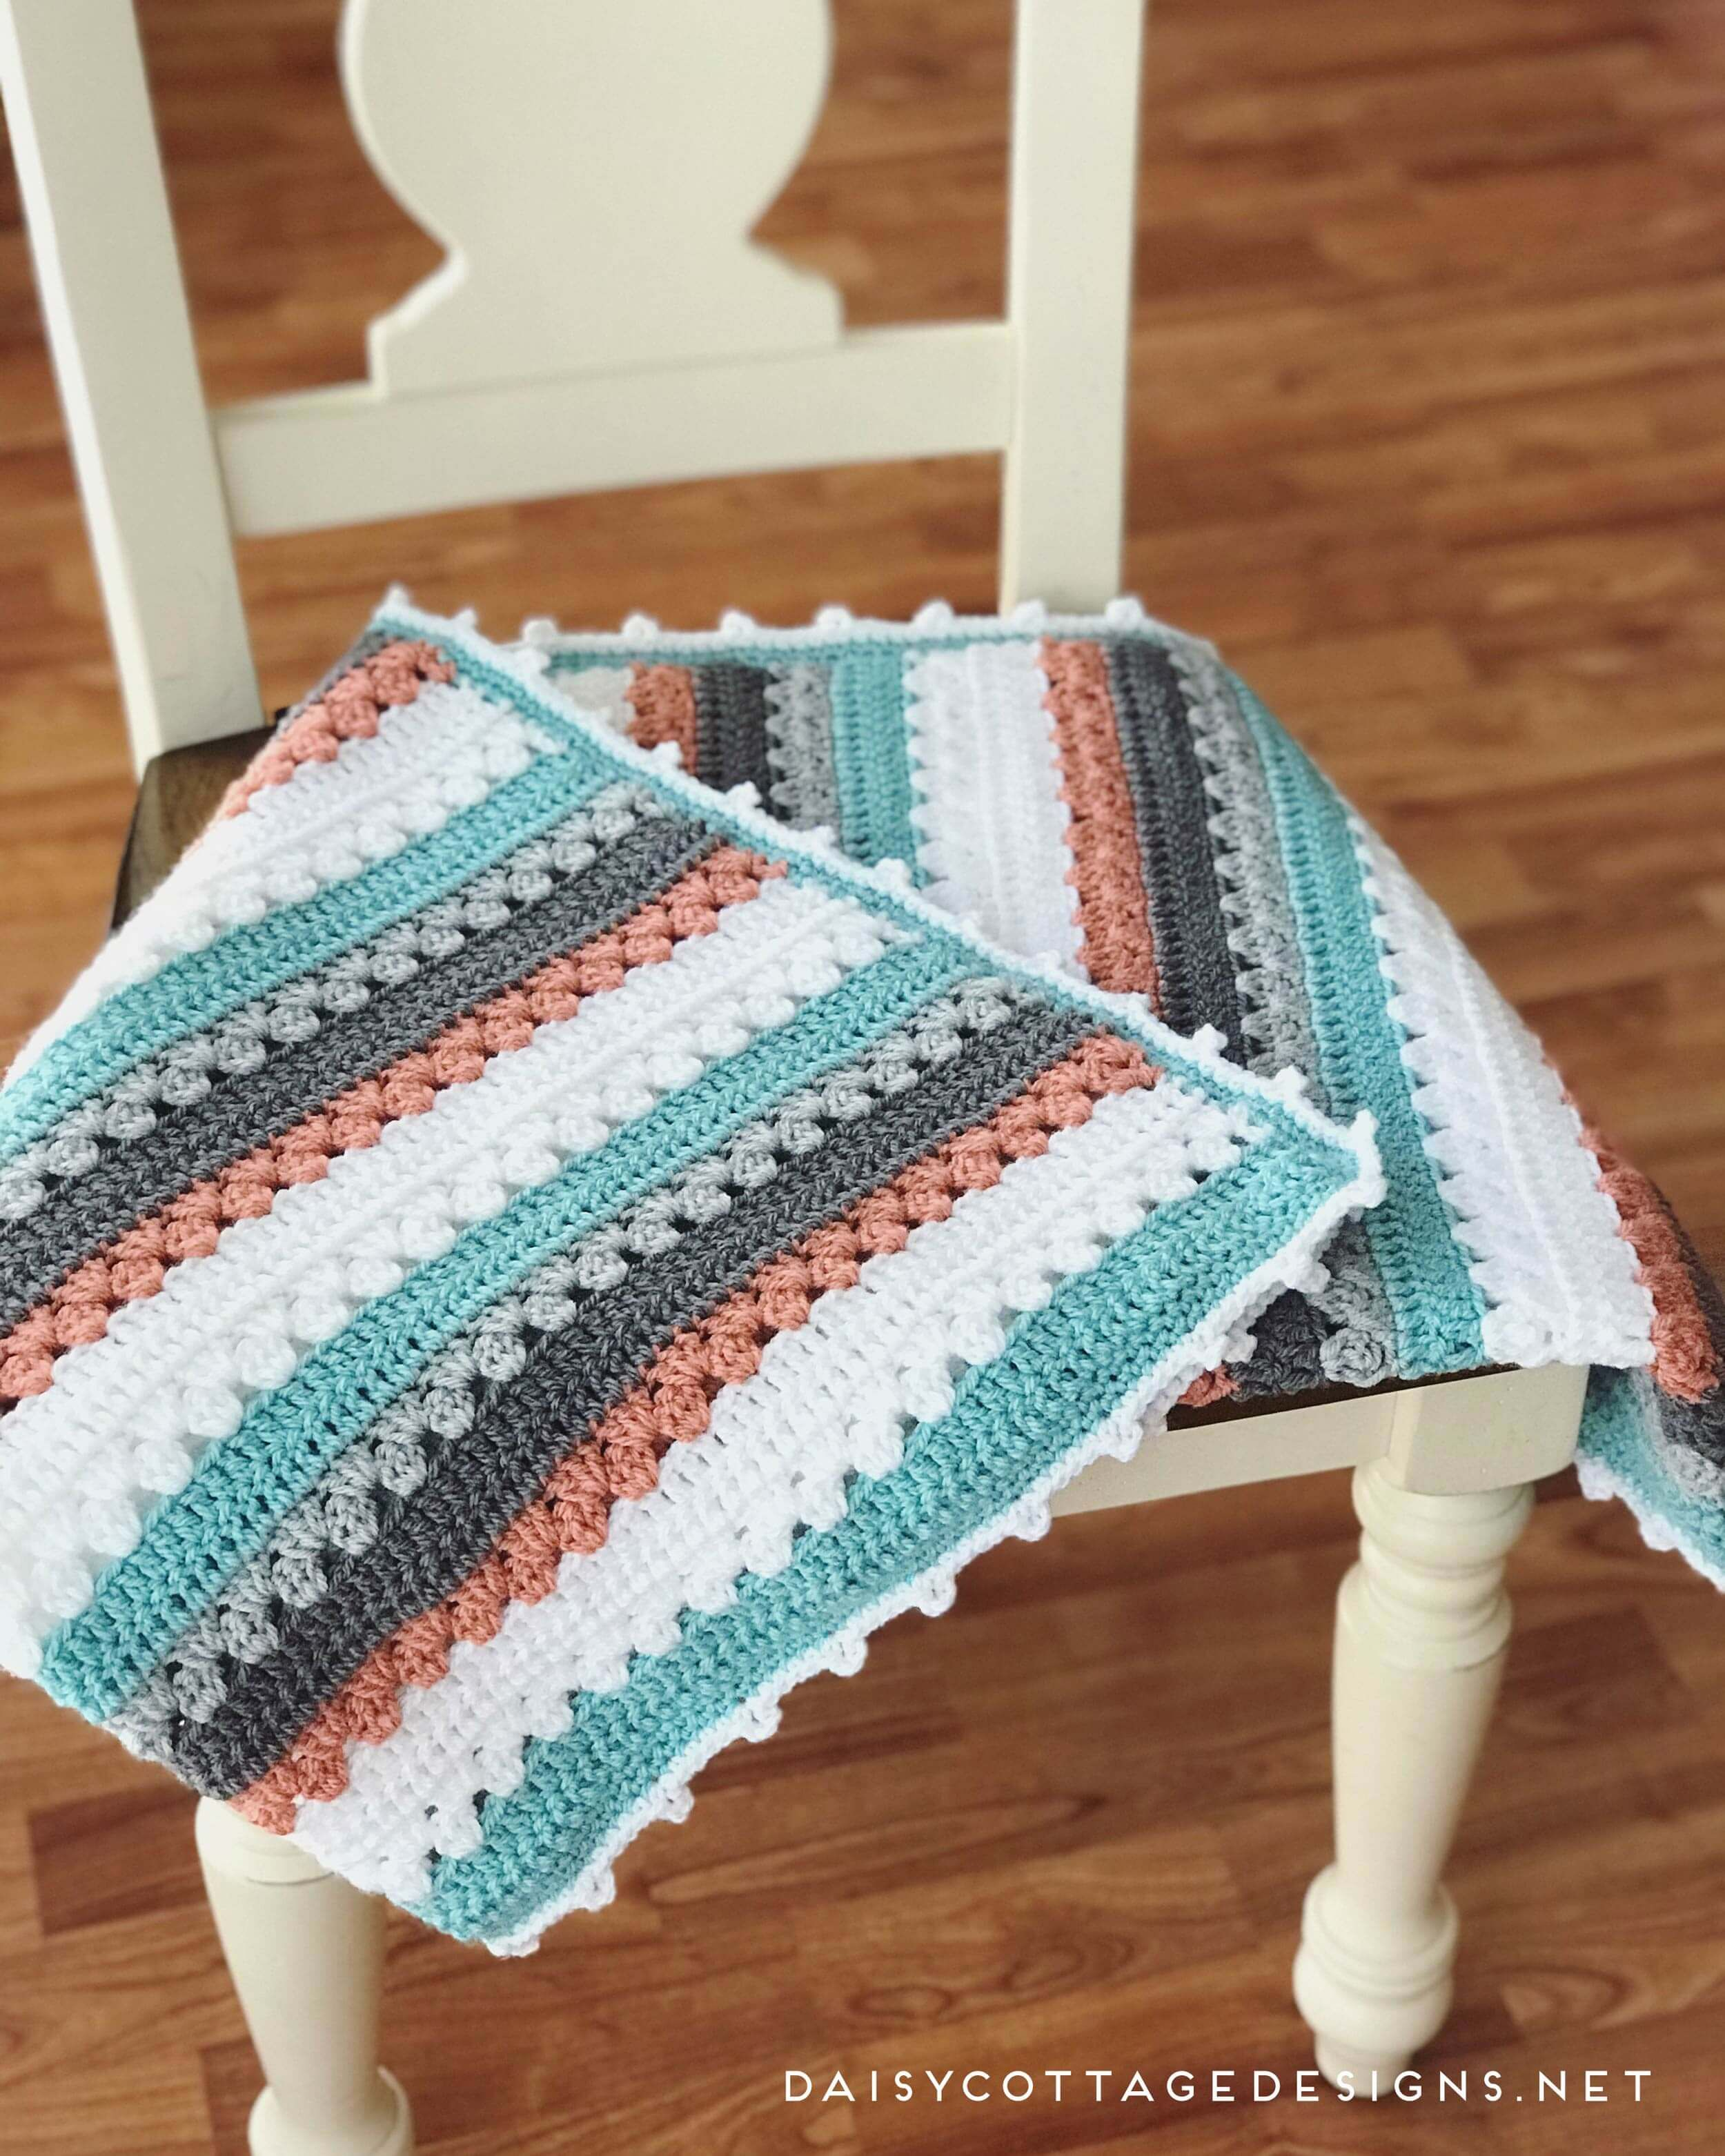 Crochet Blanket Pattern: A Quick & Simple Pattern | Manta y Costura